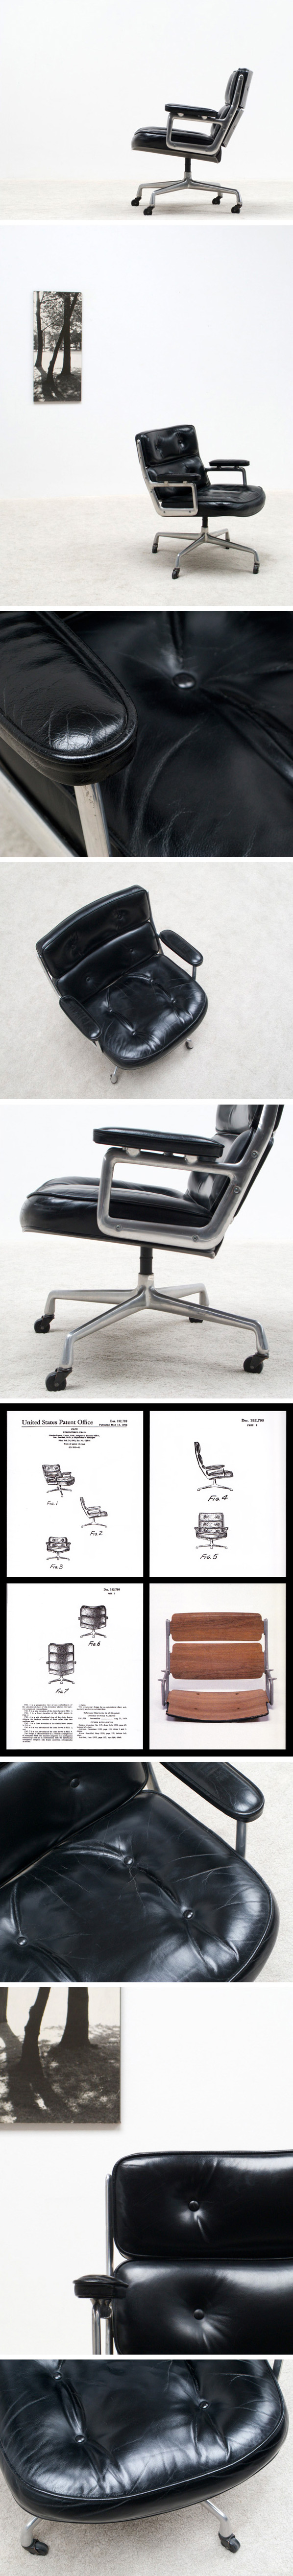 Charles Eames Time Life chair for Herman Miller Large